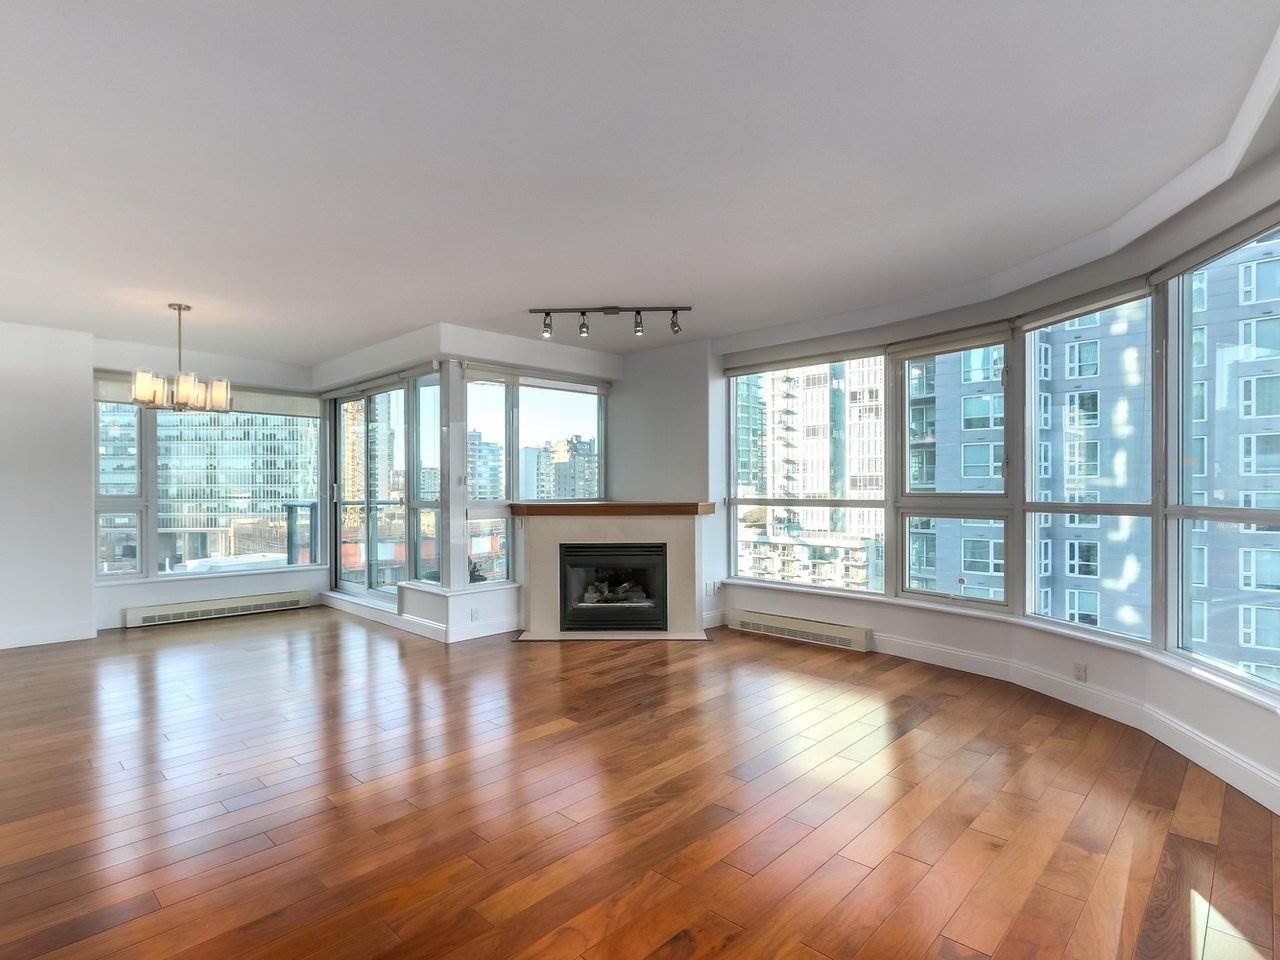 1101 535 NICOLA STREET - Coal Harbour Apartment/Condo for sale, 2 Bedrooms (R2331656) - #6